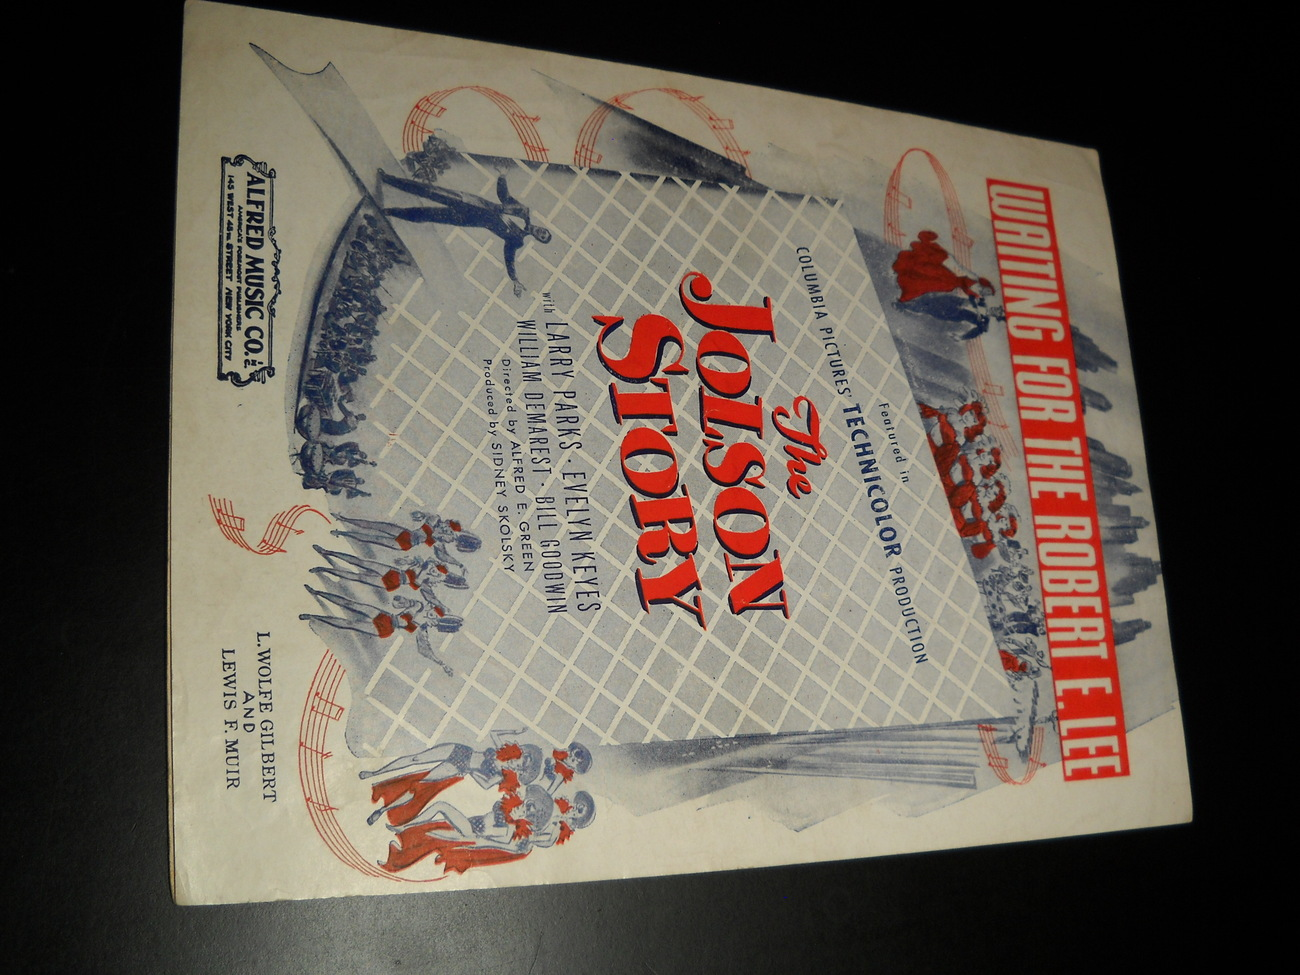 Sheet_music_waiting_for_the_robert_e_lee_the_jolson_story_1942_columbia_alfred_music_01